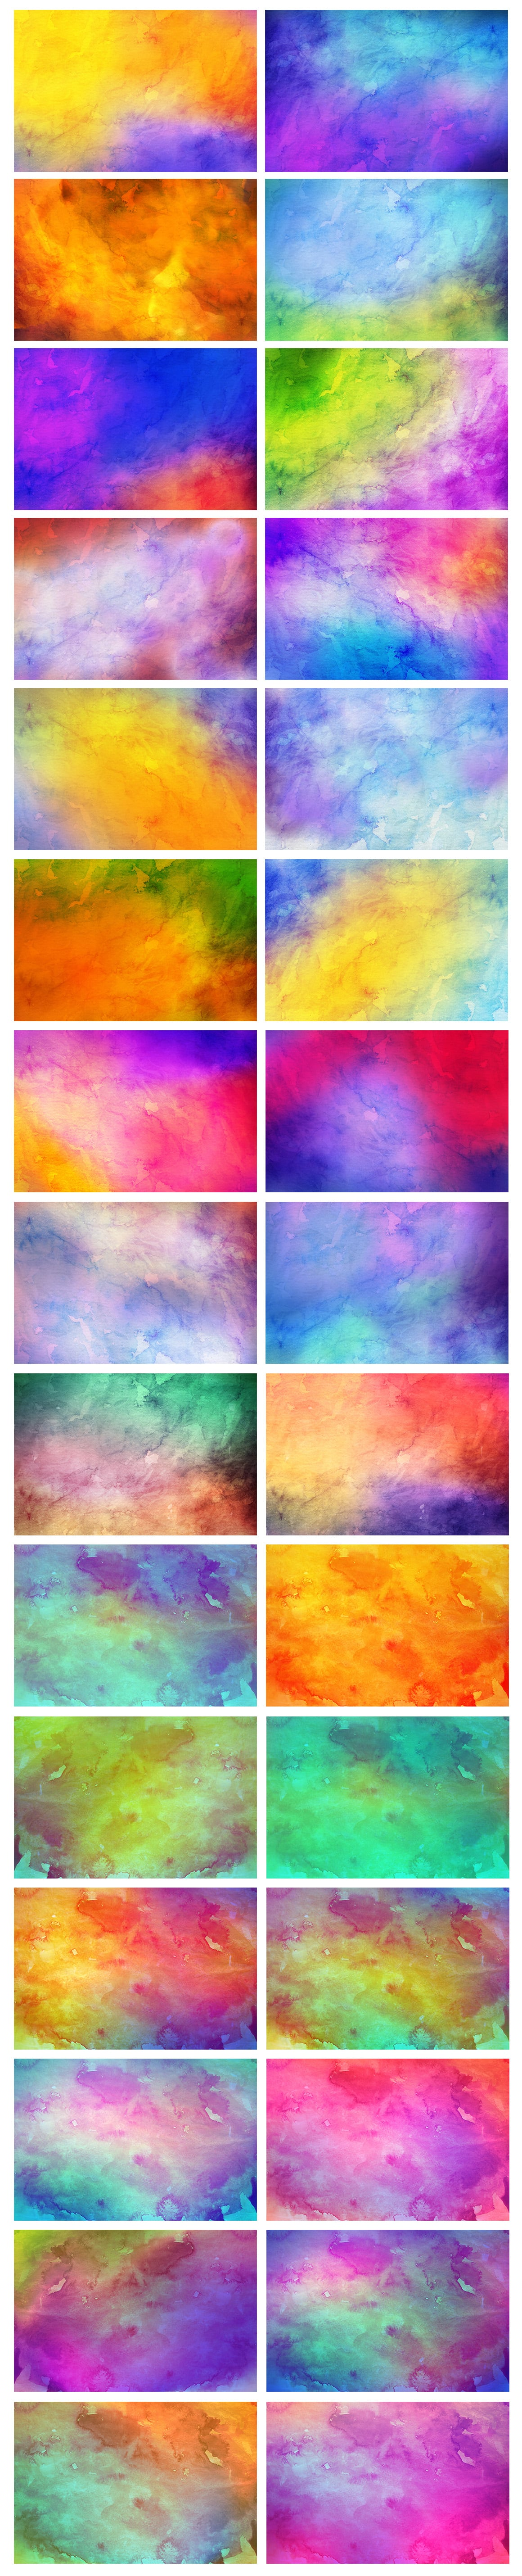 540+ Watercolor Backgrounds Bundle - 544 Items. Only $18! - prev1 copy o